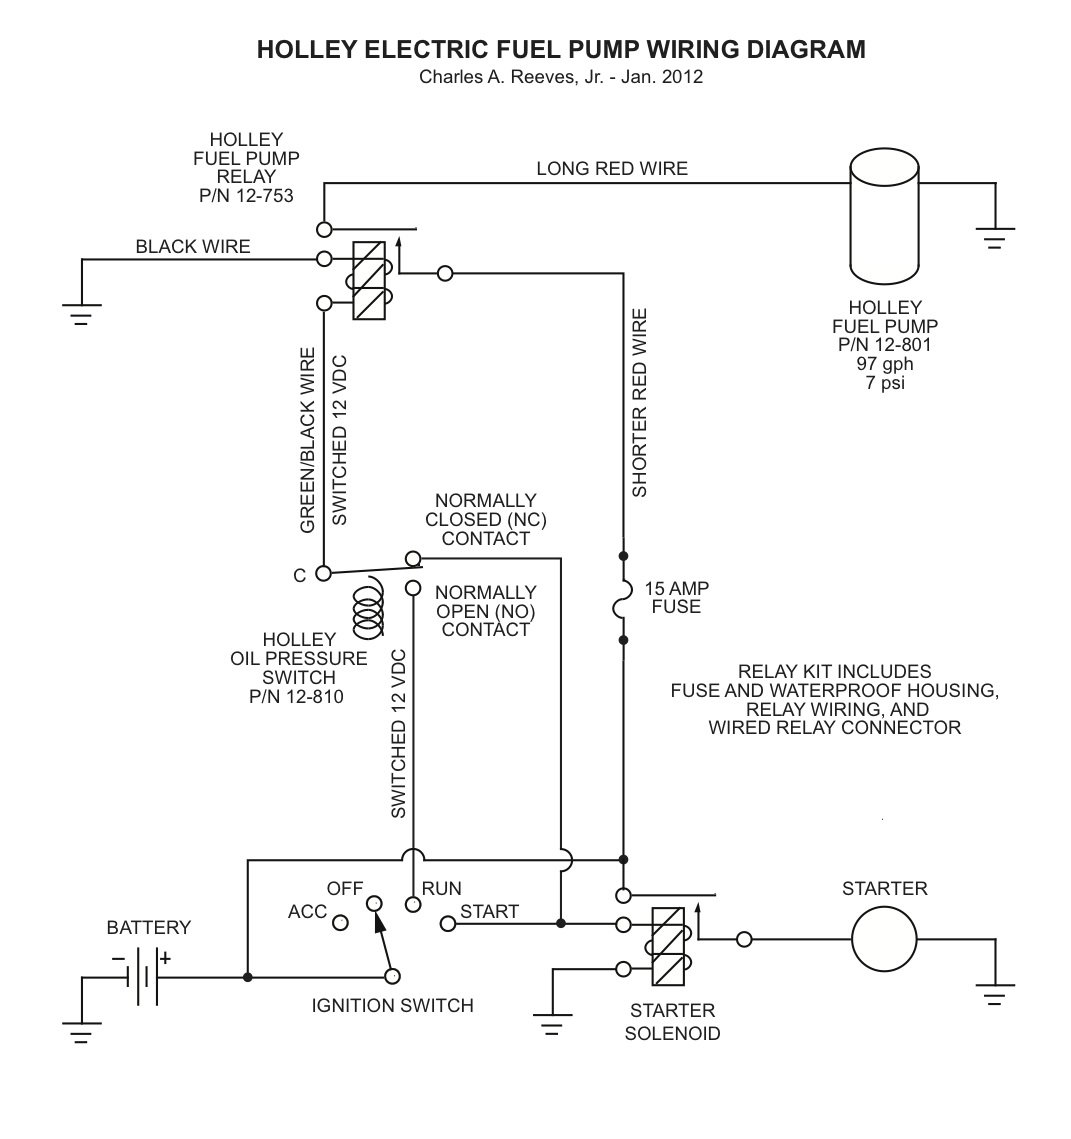 146291d1325616423 installing holley electric fuel pump 1966 mustang elect fuel pump wiring diagram installing a holley electric fuel pump in a 1966 mustang ford ox66 oil pump wiring diagram at bayanpartner.co